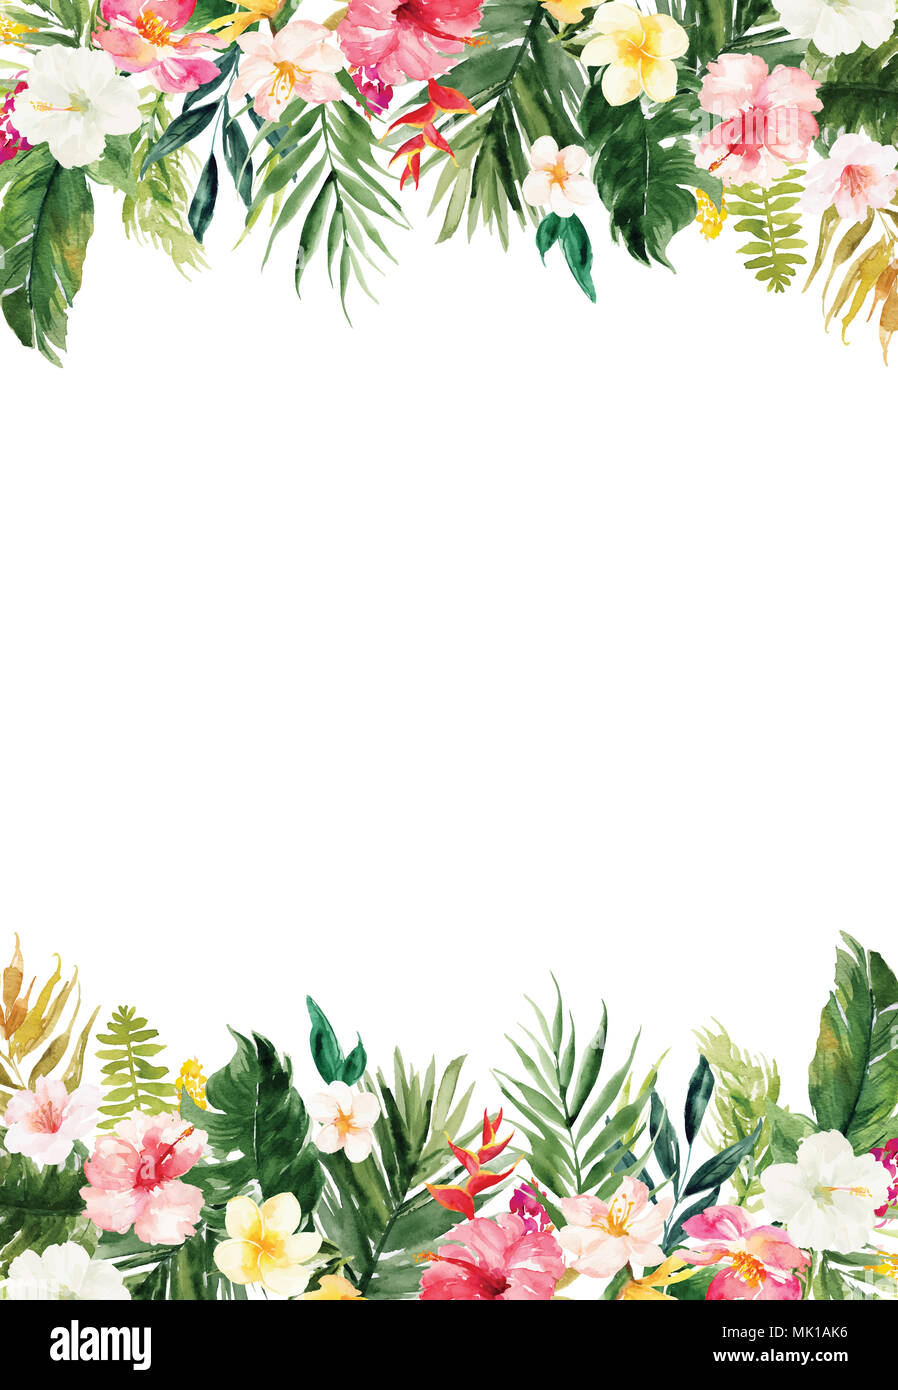 The Vertical White Blank Paper Background With Colorful Plants And